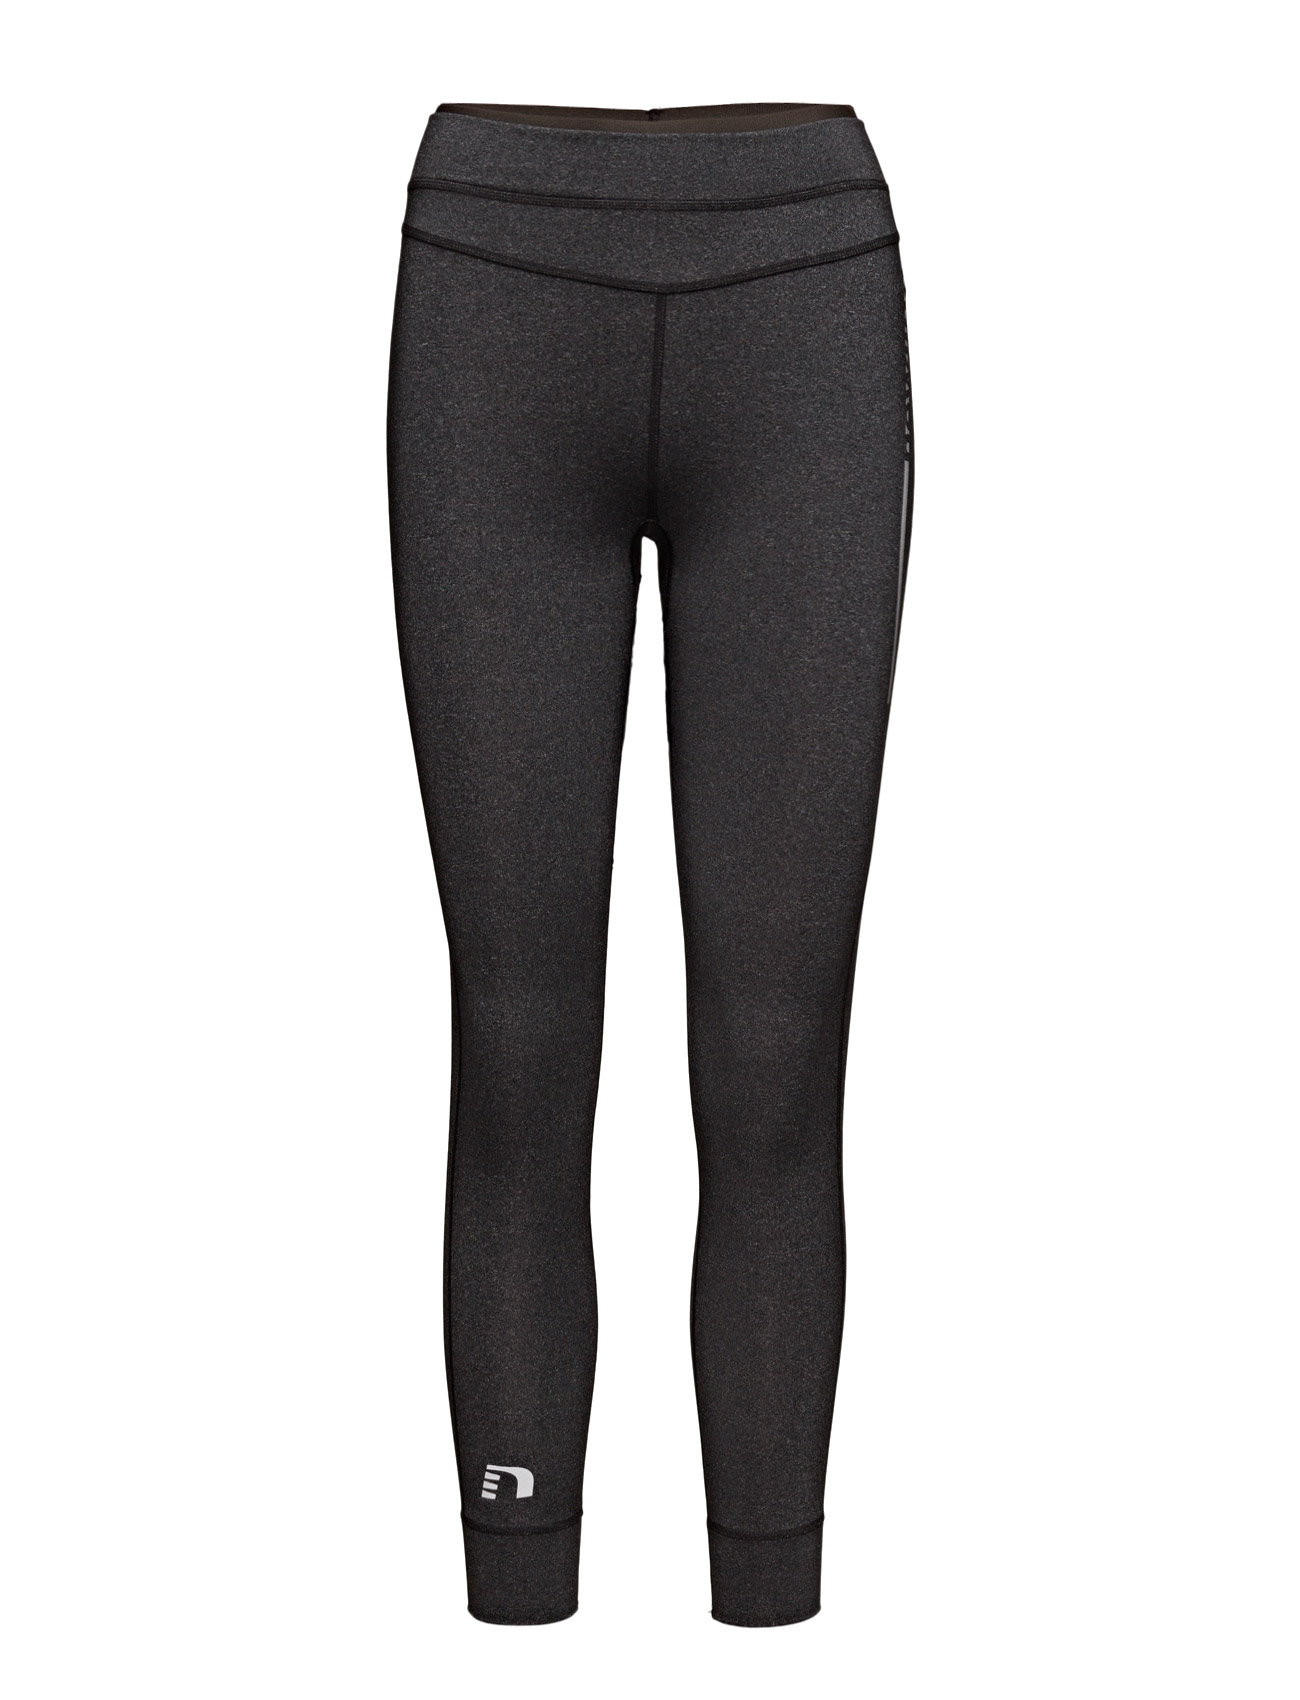 Imotion Heather 7/8 Tights Newline Trænings leggings til Damer i